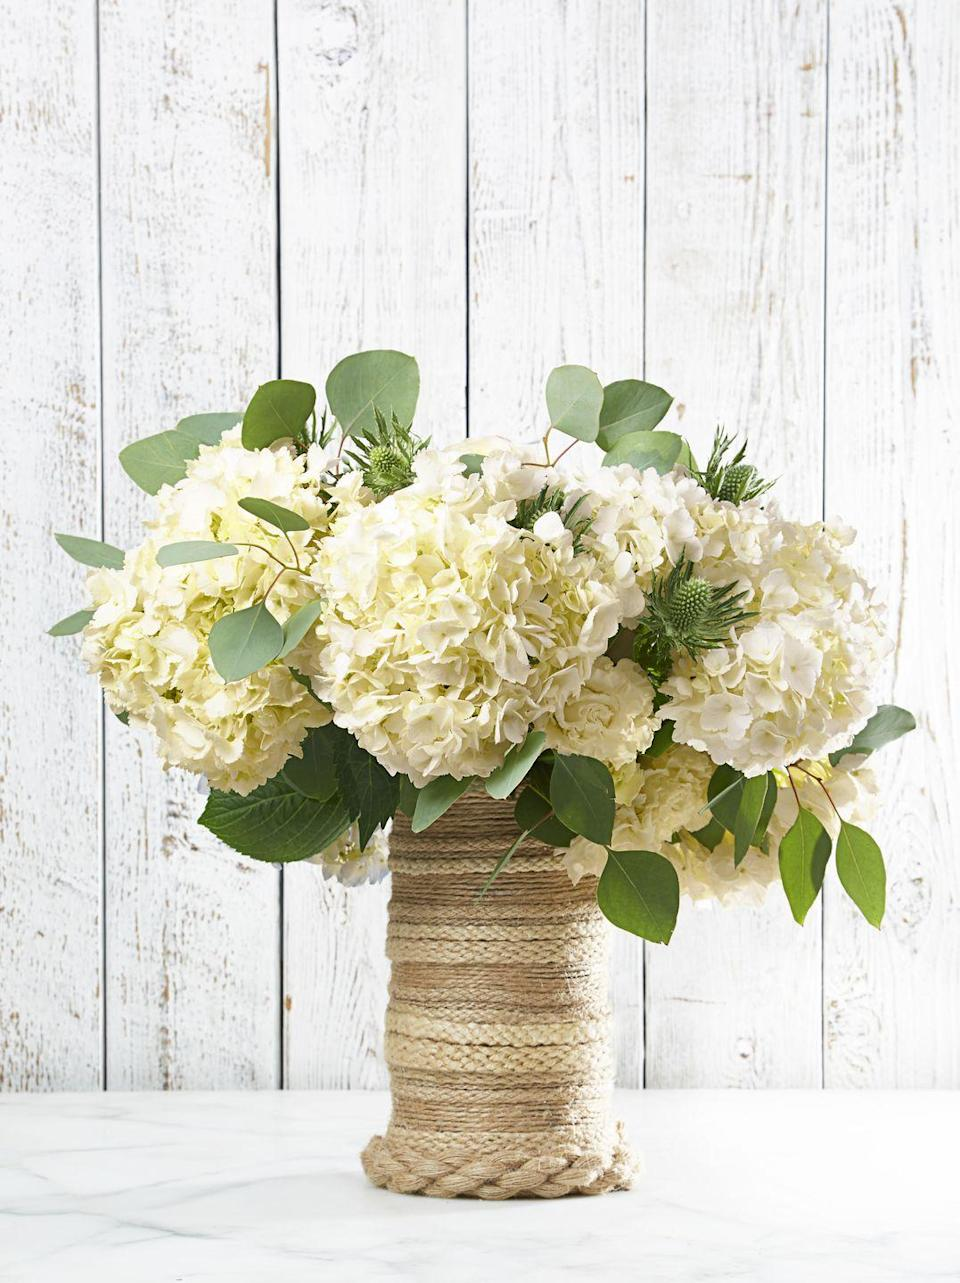 """<p>Add a nautical vibe to your centerpiece with a few lengths of jute rope. The trick: Flip the vase upside down and work from base to mouth. Toss in a beachy bunch of white hydrangeas, and you're ready for a clambake! </p><p><em><a href=""""https://www.goodhousekeeping.com/home/craft-ideas/how-to/g597/diy-vase-upgrades/?slide=4"""" rel=""""nofollow noopener"""" target=""""_blank"""" data-ylk=""""slk:Get the tutorial »"""" class=""""link rapid-noclick-resp"""">Get the tutorial »</a></em> </p>"""